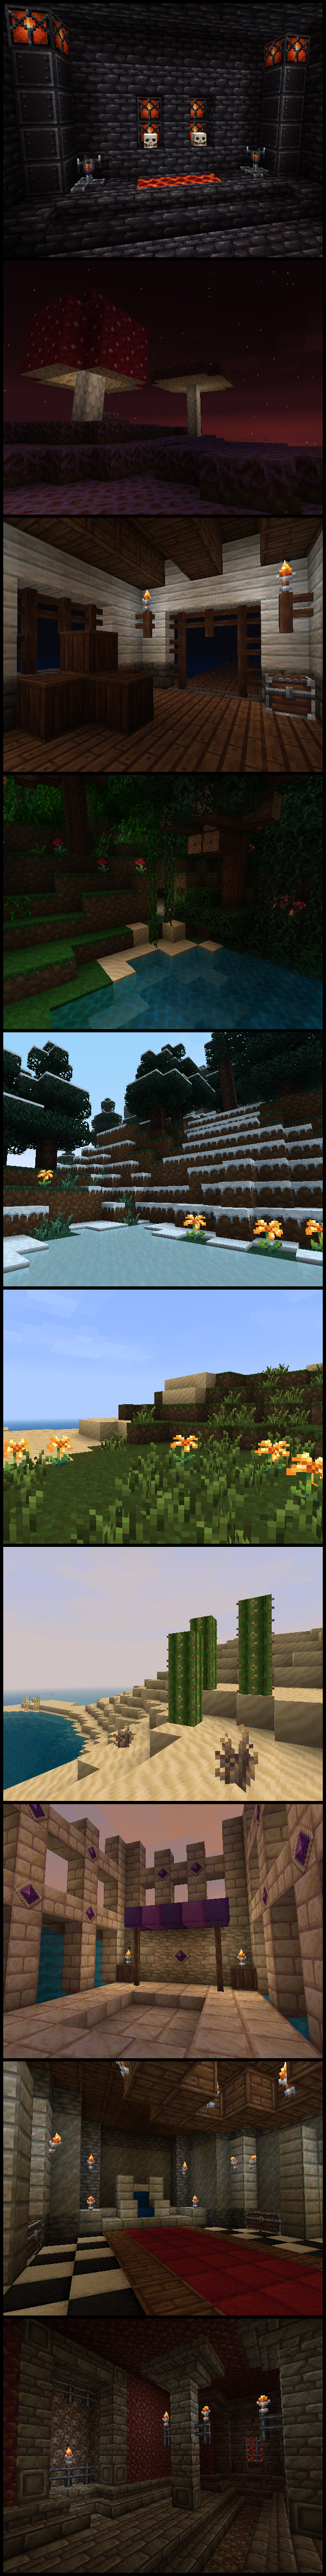 5b23a  Wayukian texture pack 2 [1.5.2/1.5.1] [16x] Wayukian Texture Pack Download